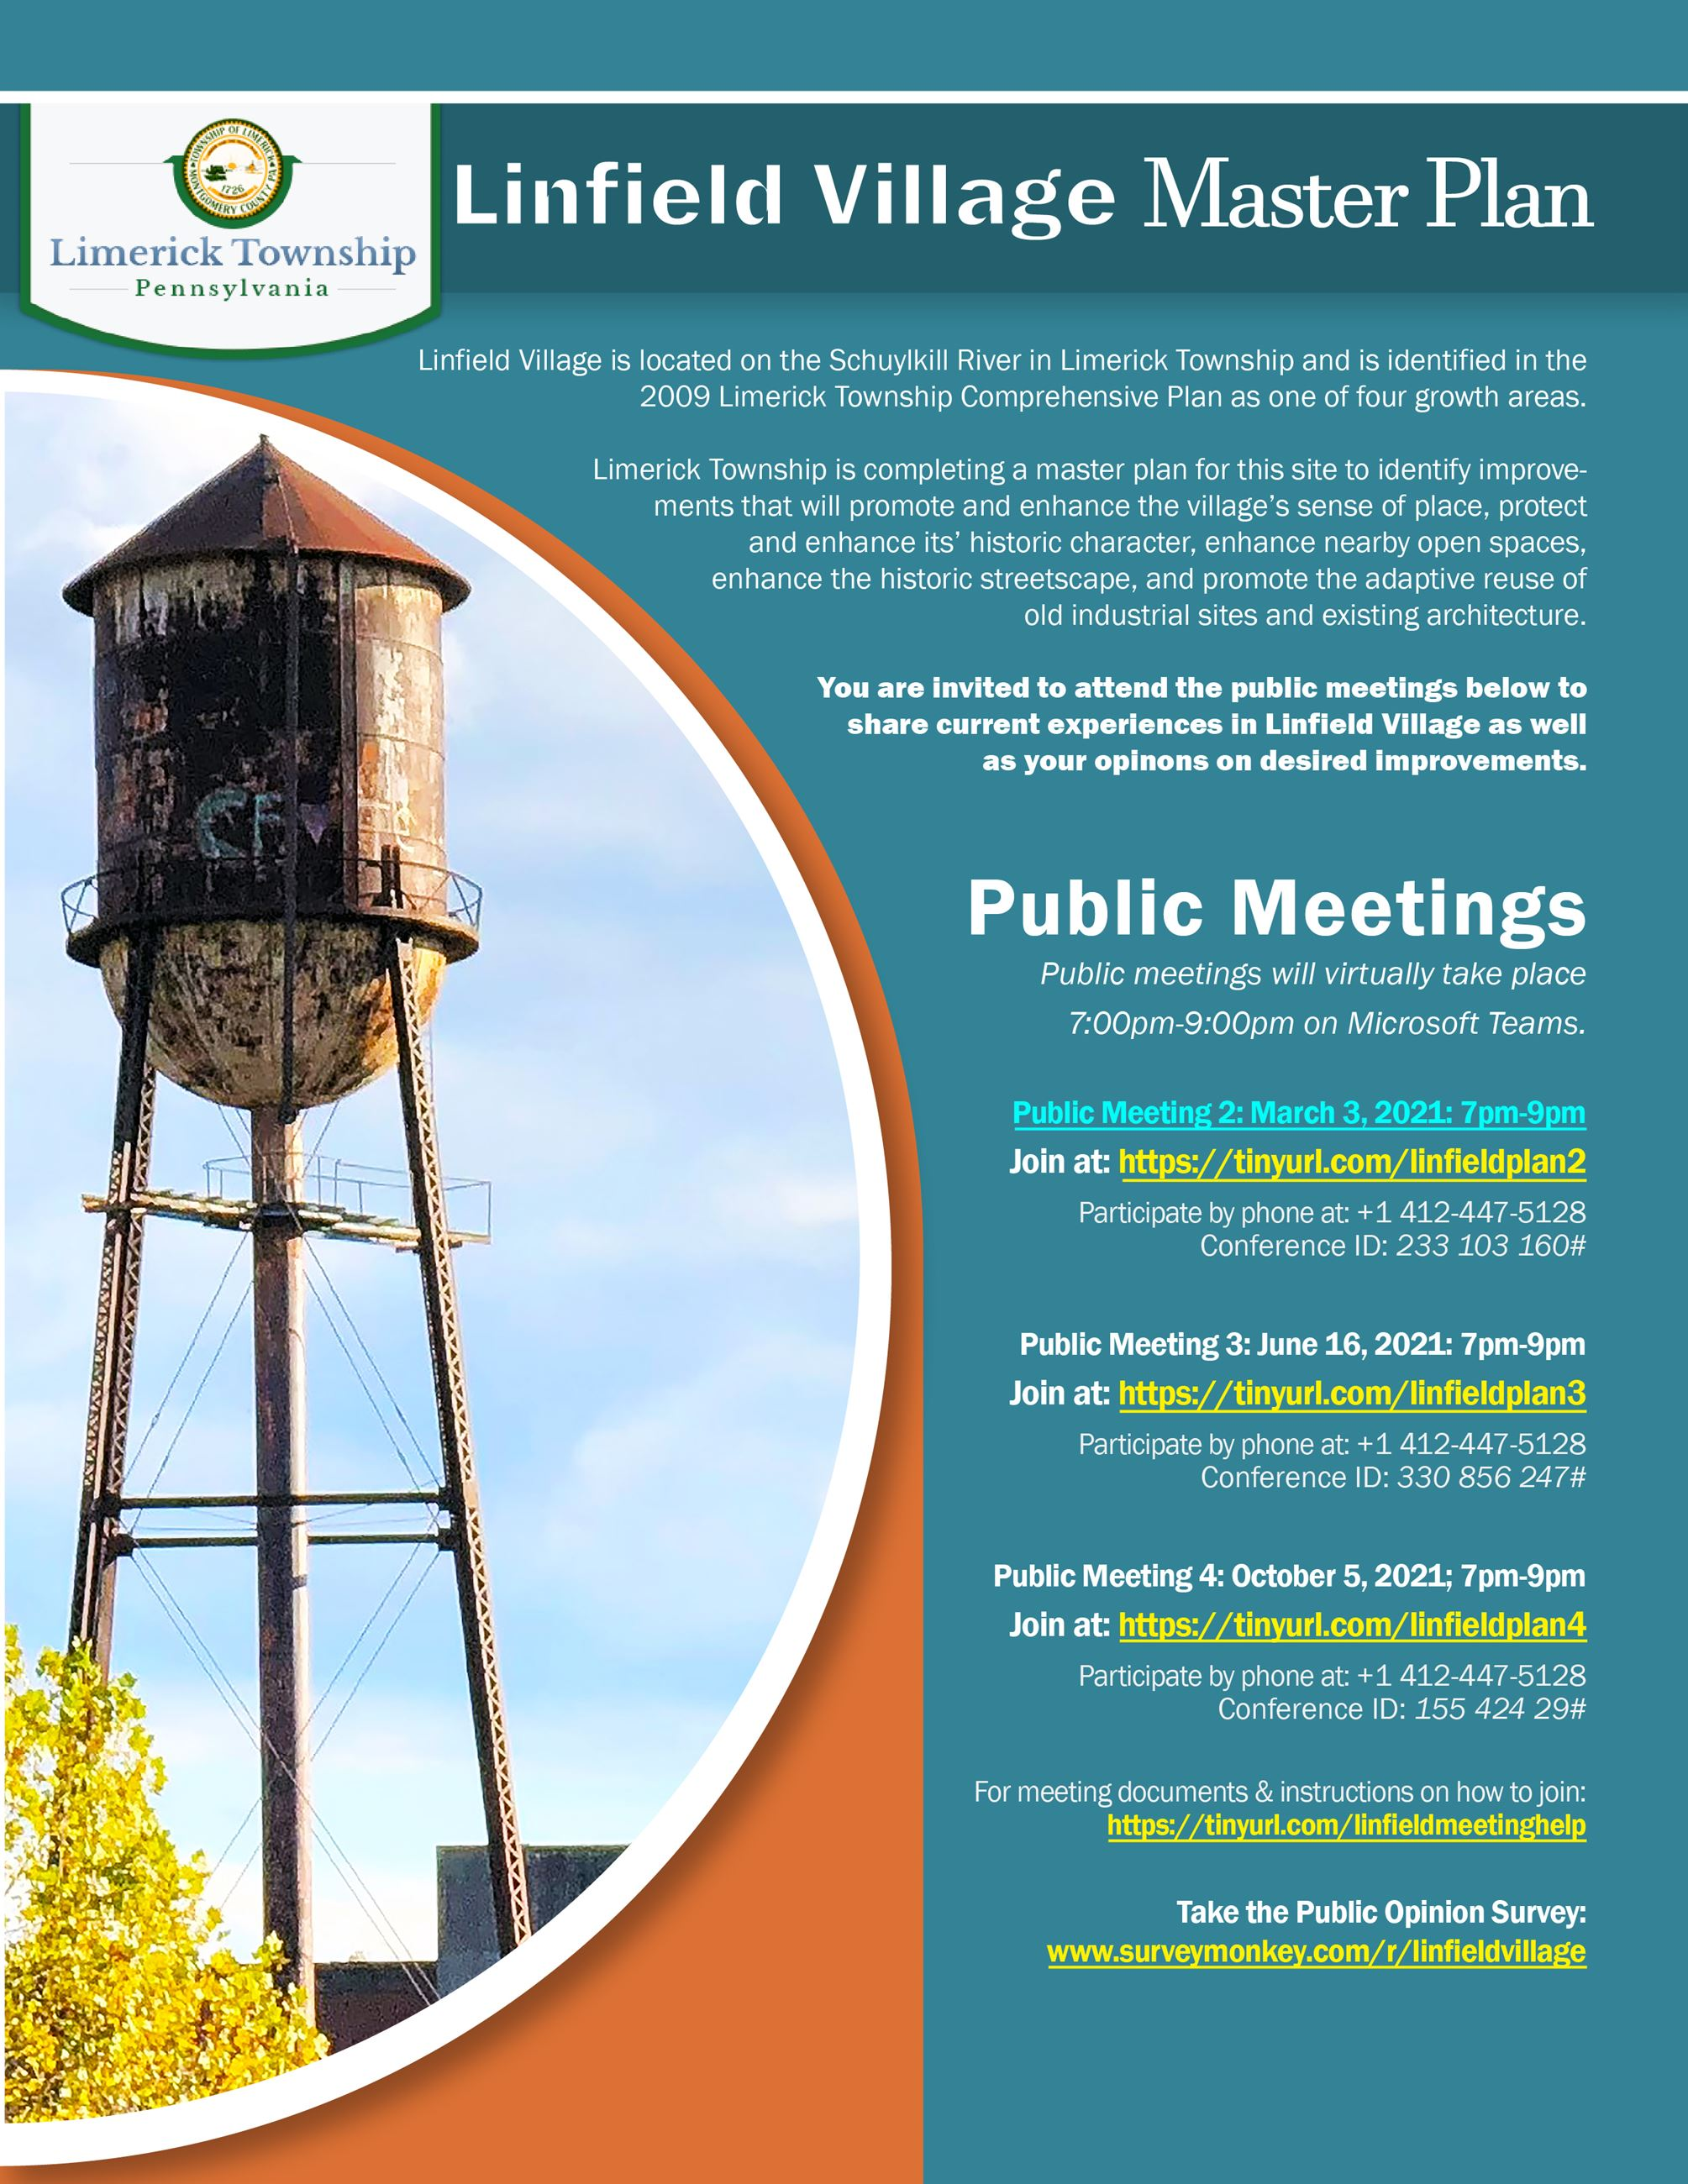 200131_Public Meeting Poster_large